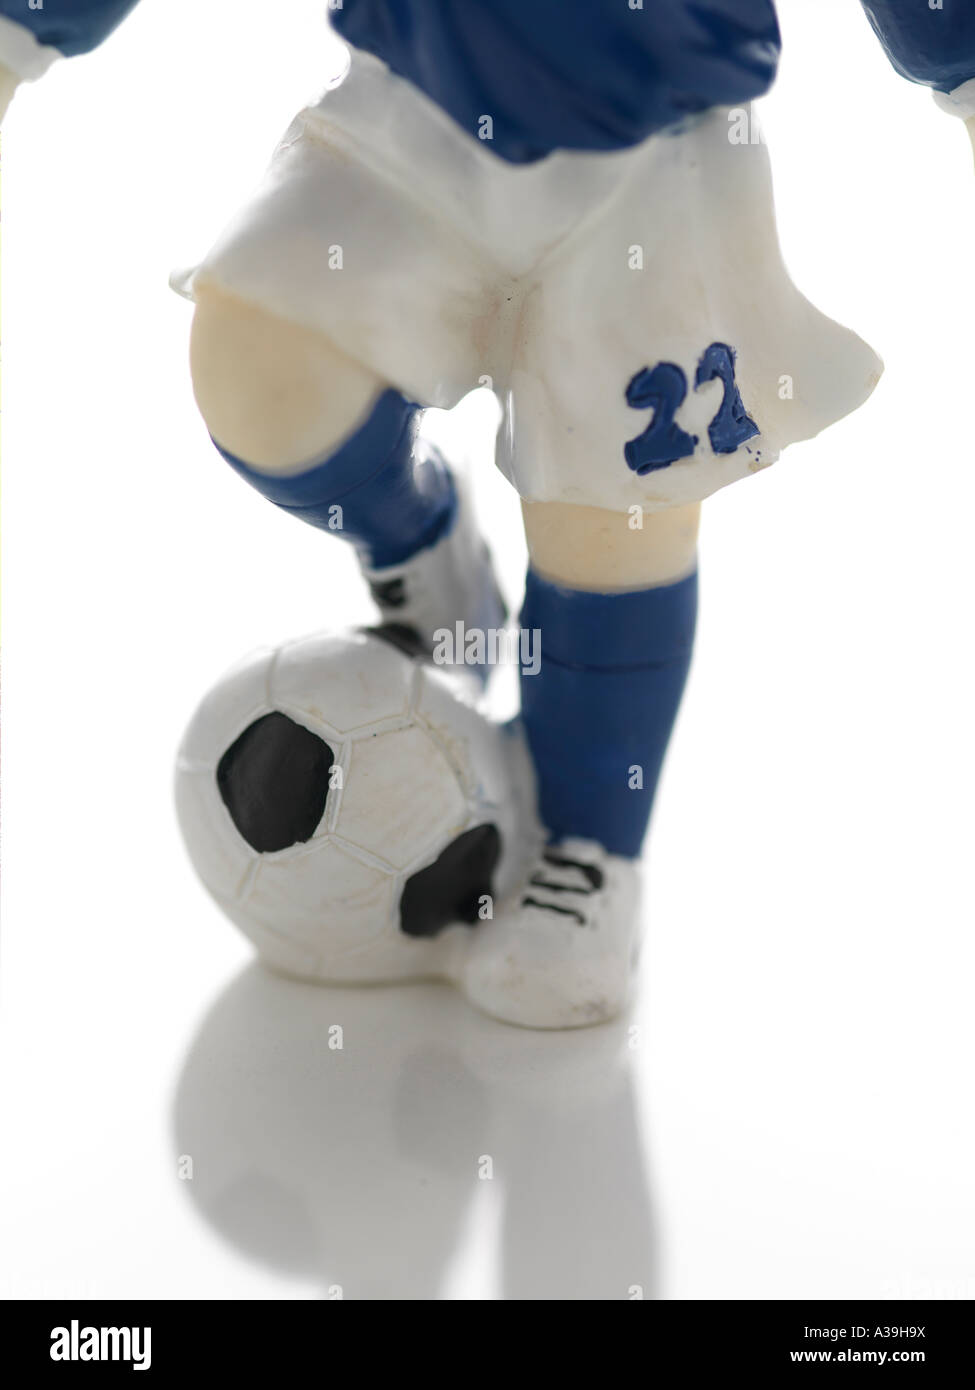 Football player ornament - Stock Photo Ornament Small Statue Soccer Player Ball Leg Game Football Sport Playing Athlete Play National Italy Pull Number